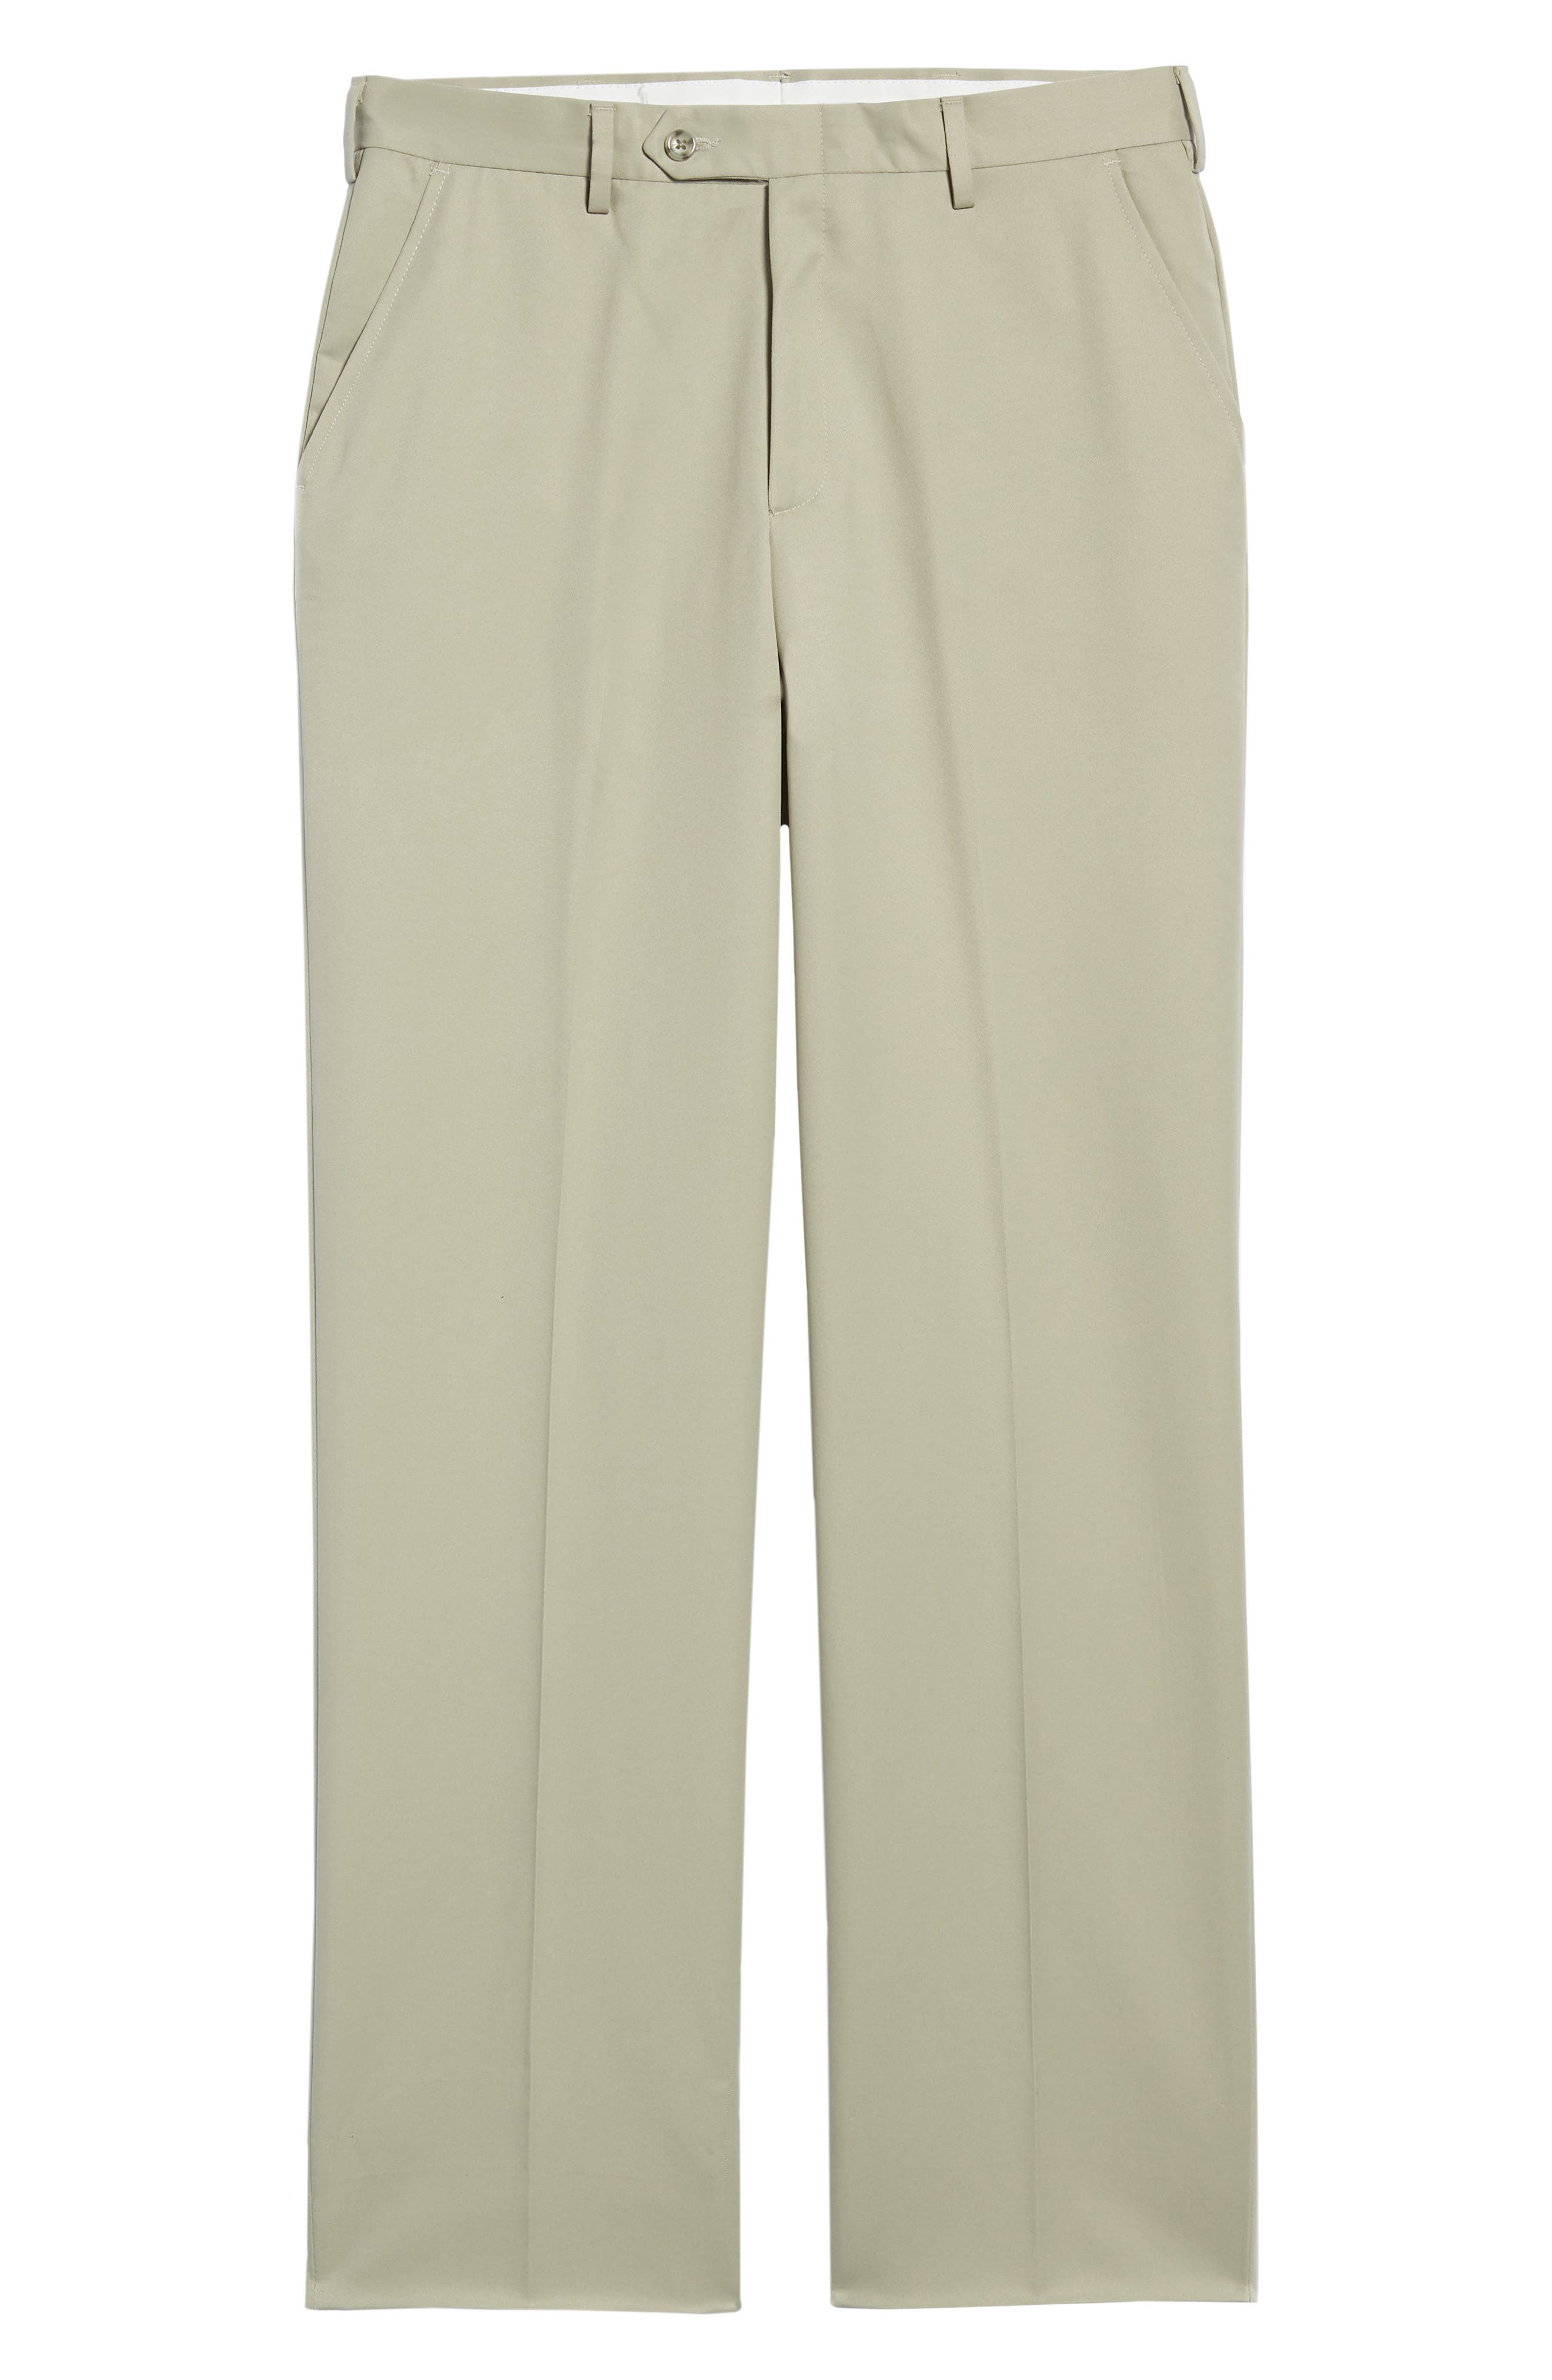 Classic Fit Flat Front Microfiber Performance Trousers,                             Alternate thumbnail 6, color,                             TAUPE